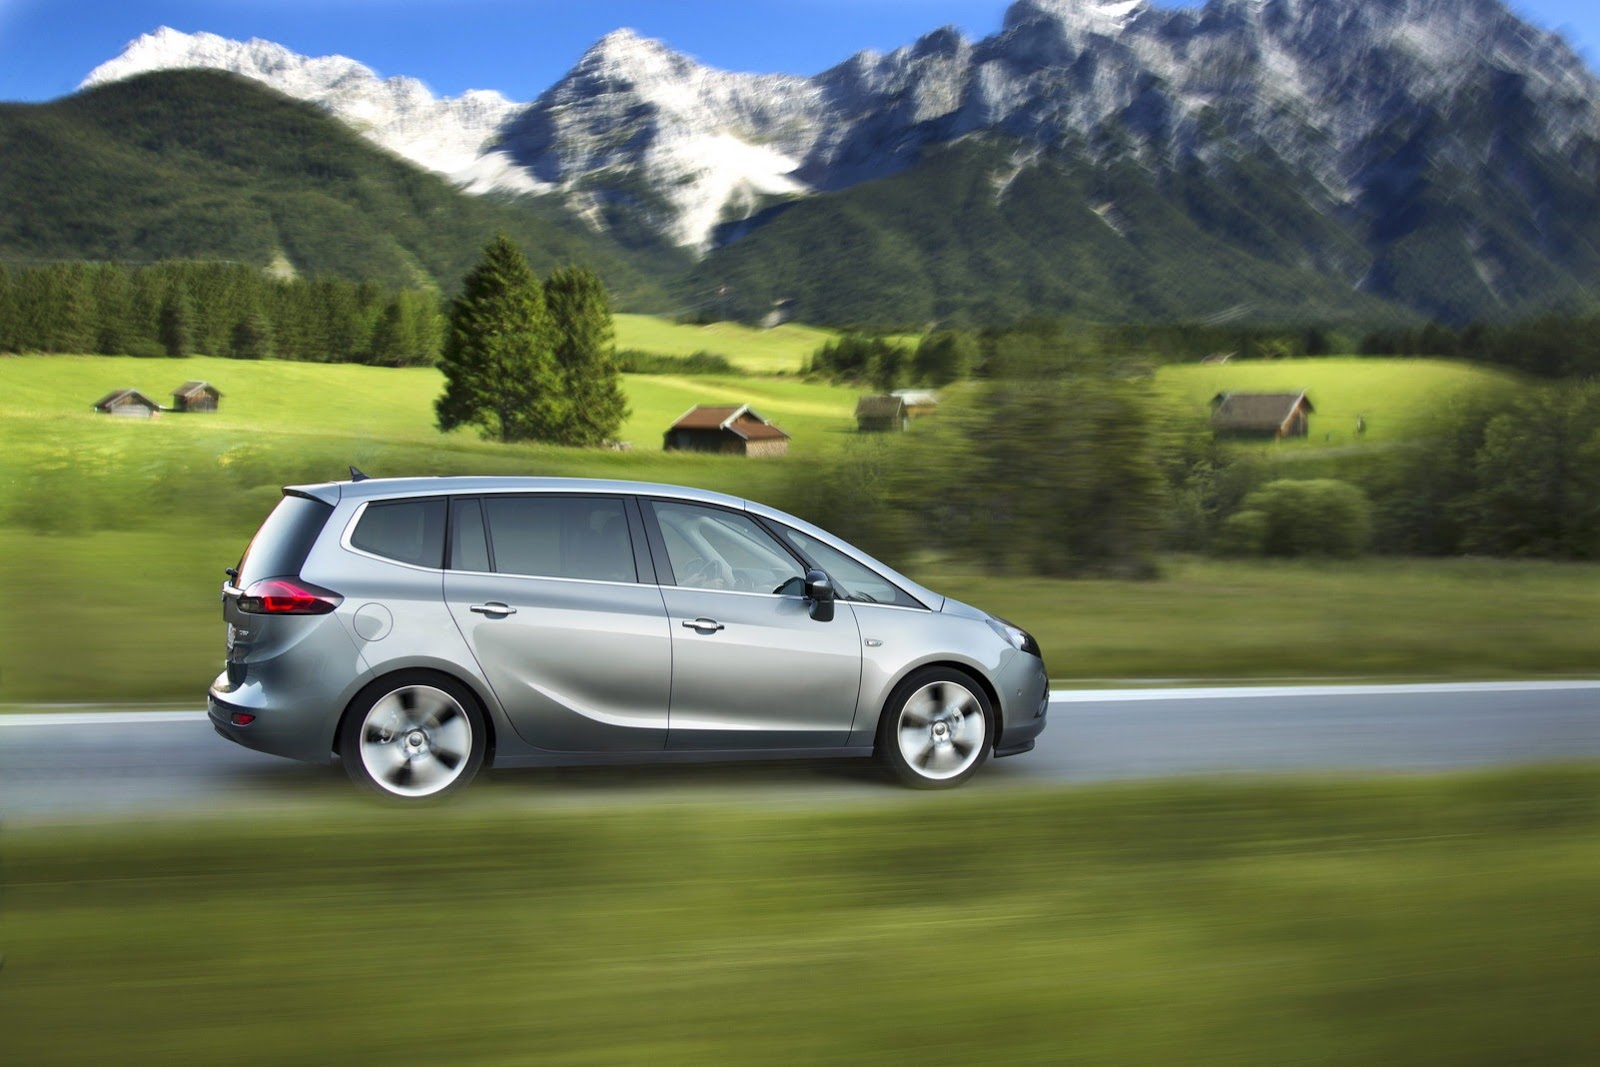 Opel Zafira Tourer is first to get GM's new 1.6L diesel engine